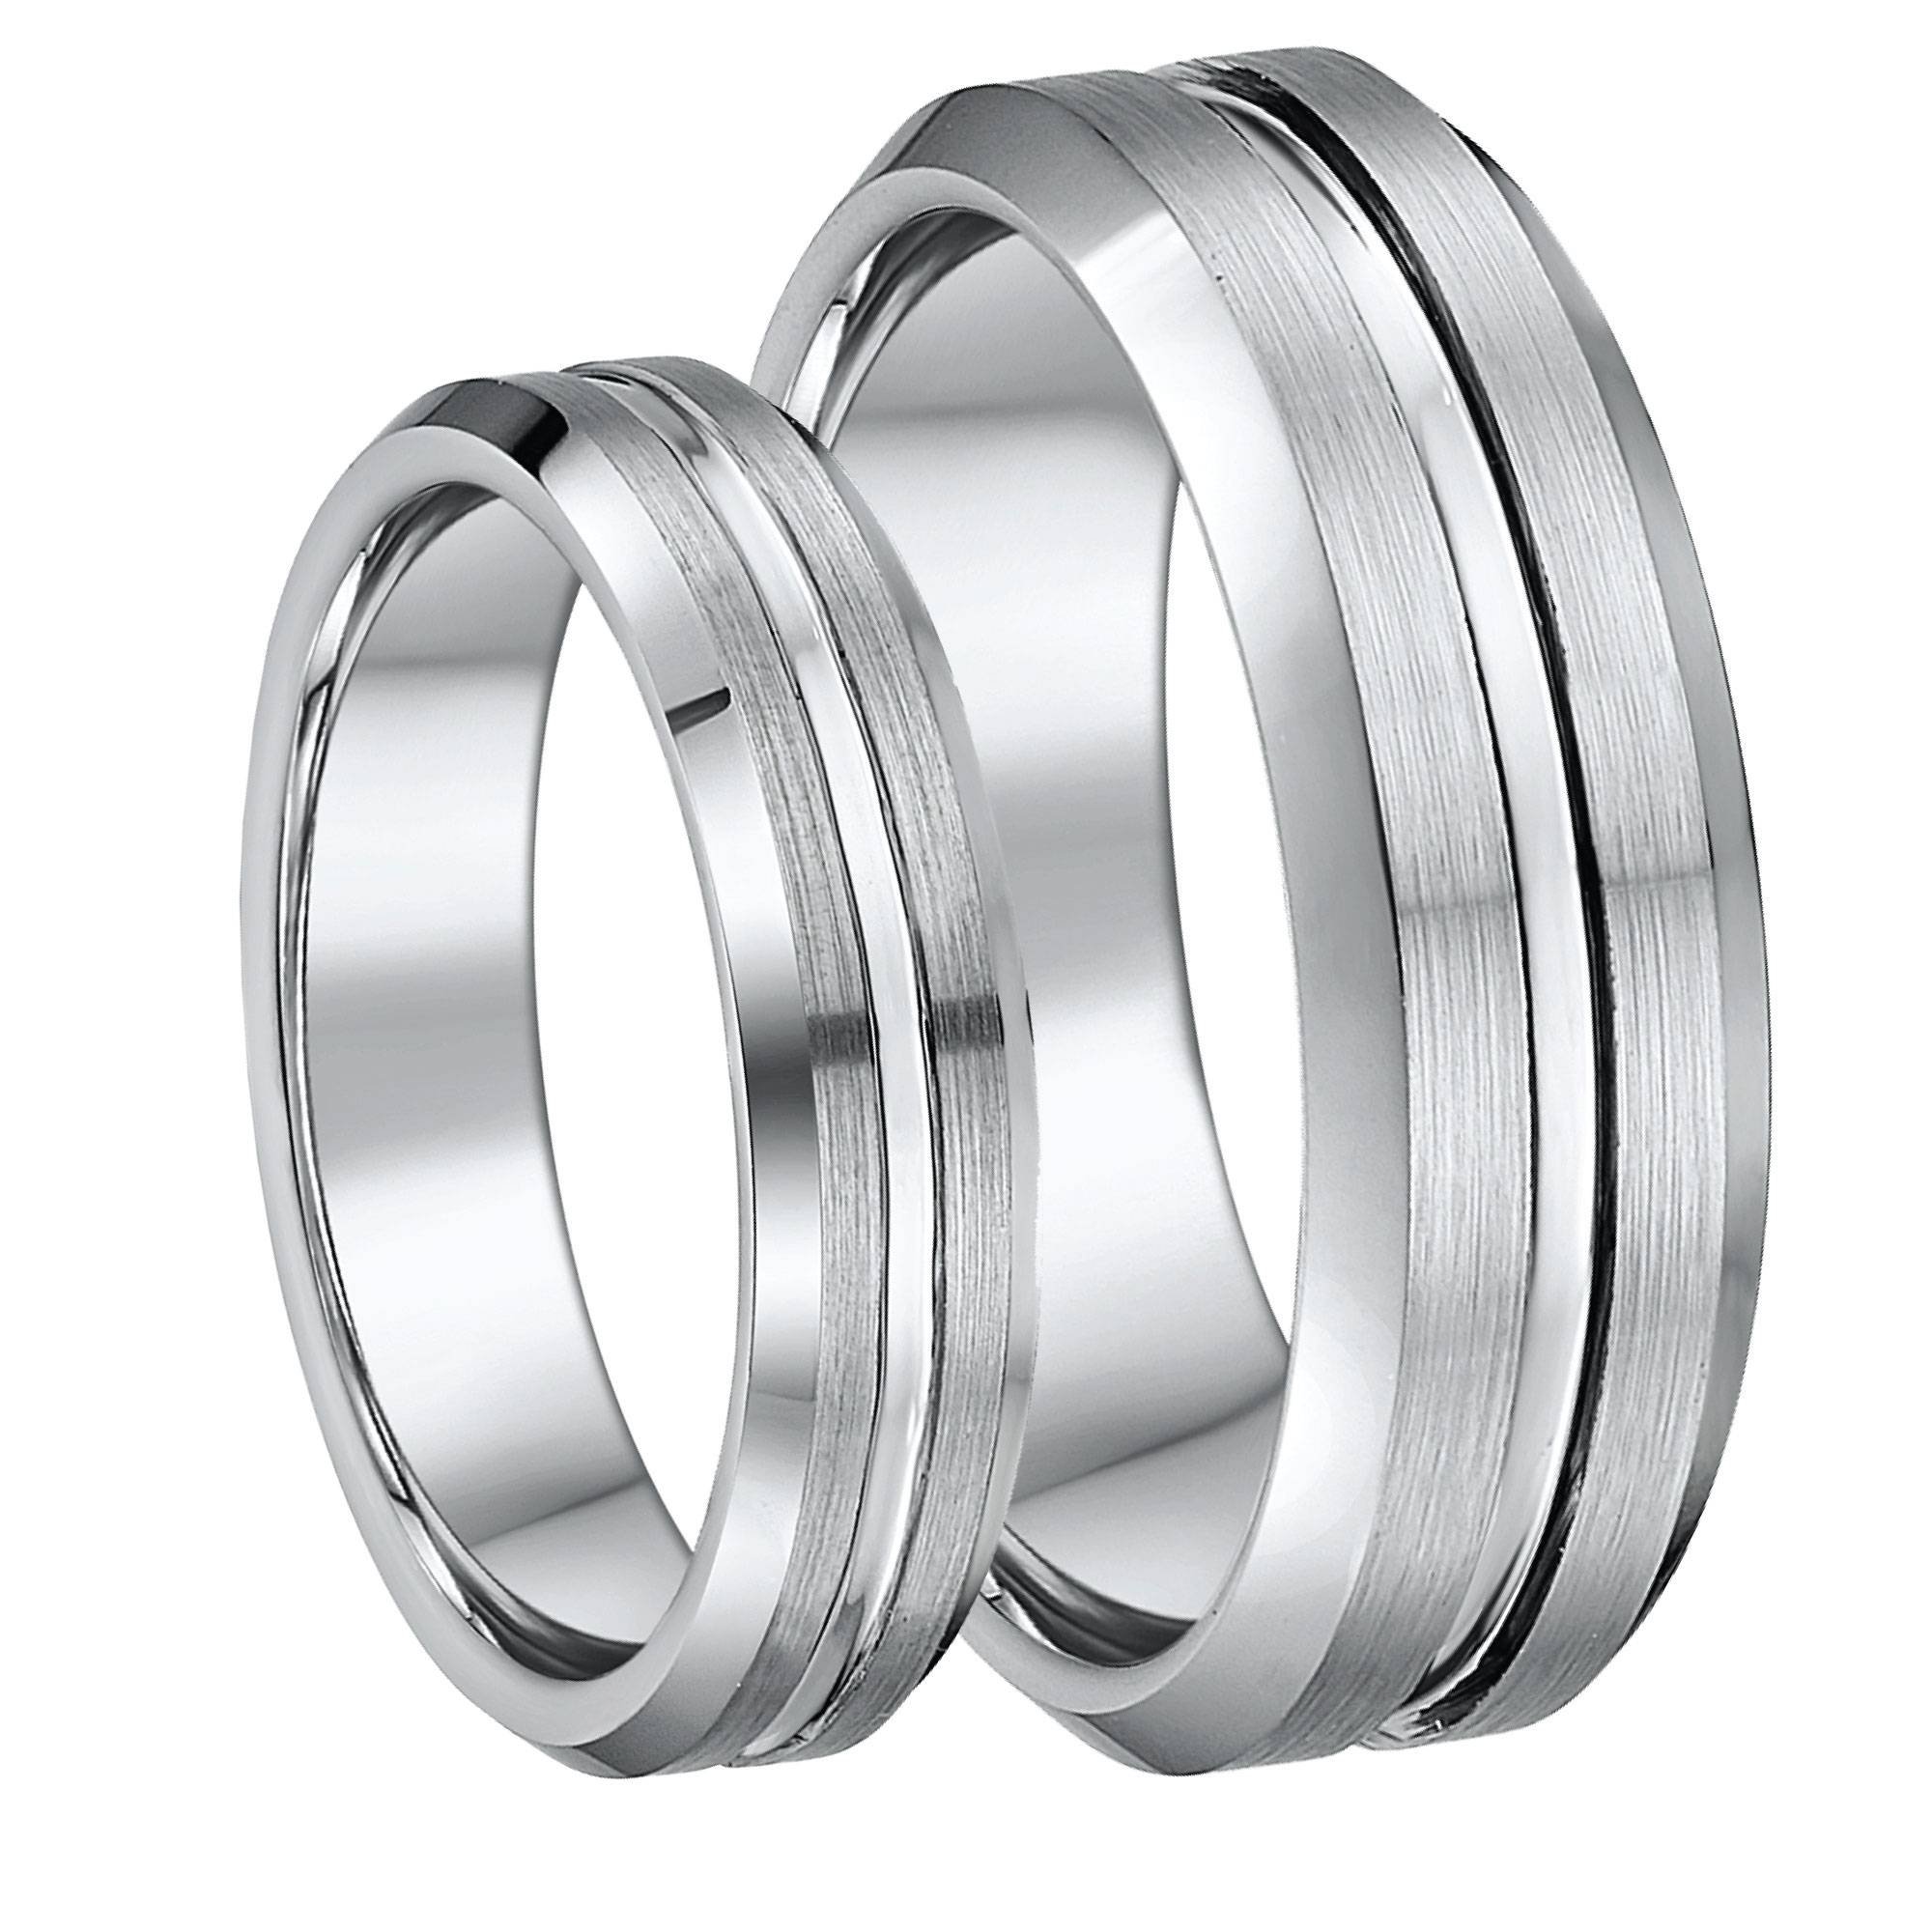 Matching Tungsten Wedding Ring Sets For Him And Her, Lowest Prices Inside Tungsten Wedding Bands Sets His And Hers (View 14 of 15)